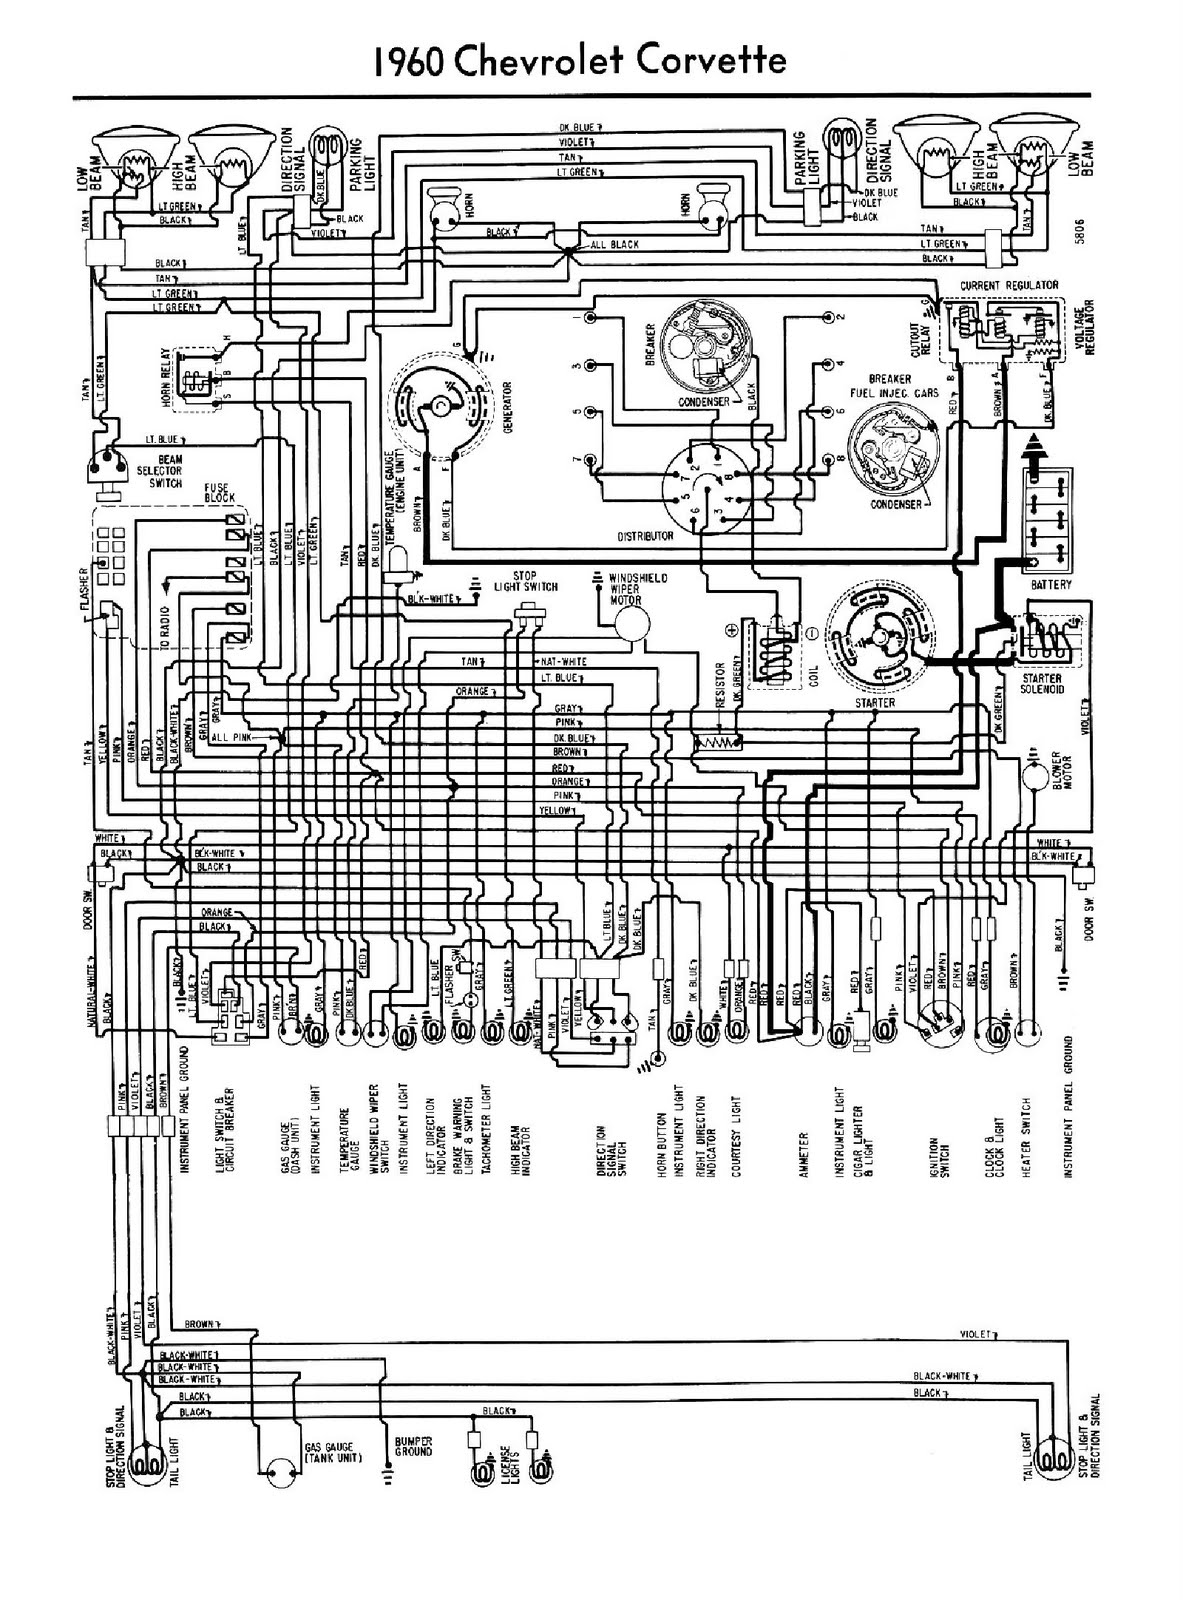 1960_Chevrolet_Corvette_Wiring corvette wiring diagram corvette parts diagram \u2022 wiring diagrams 1979 volvo 242 dl wiring diagram at aneh.co